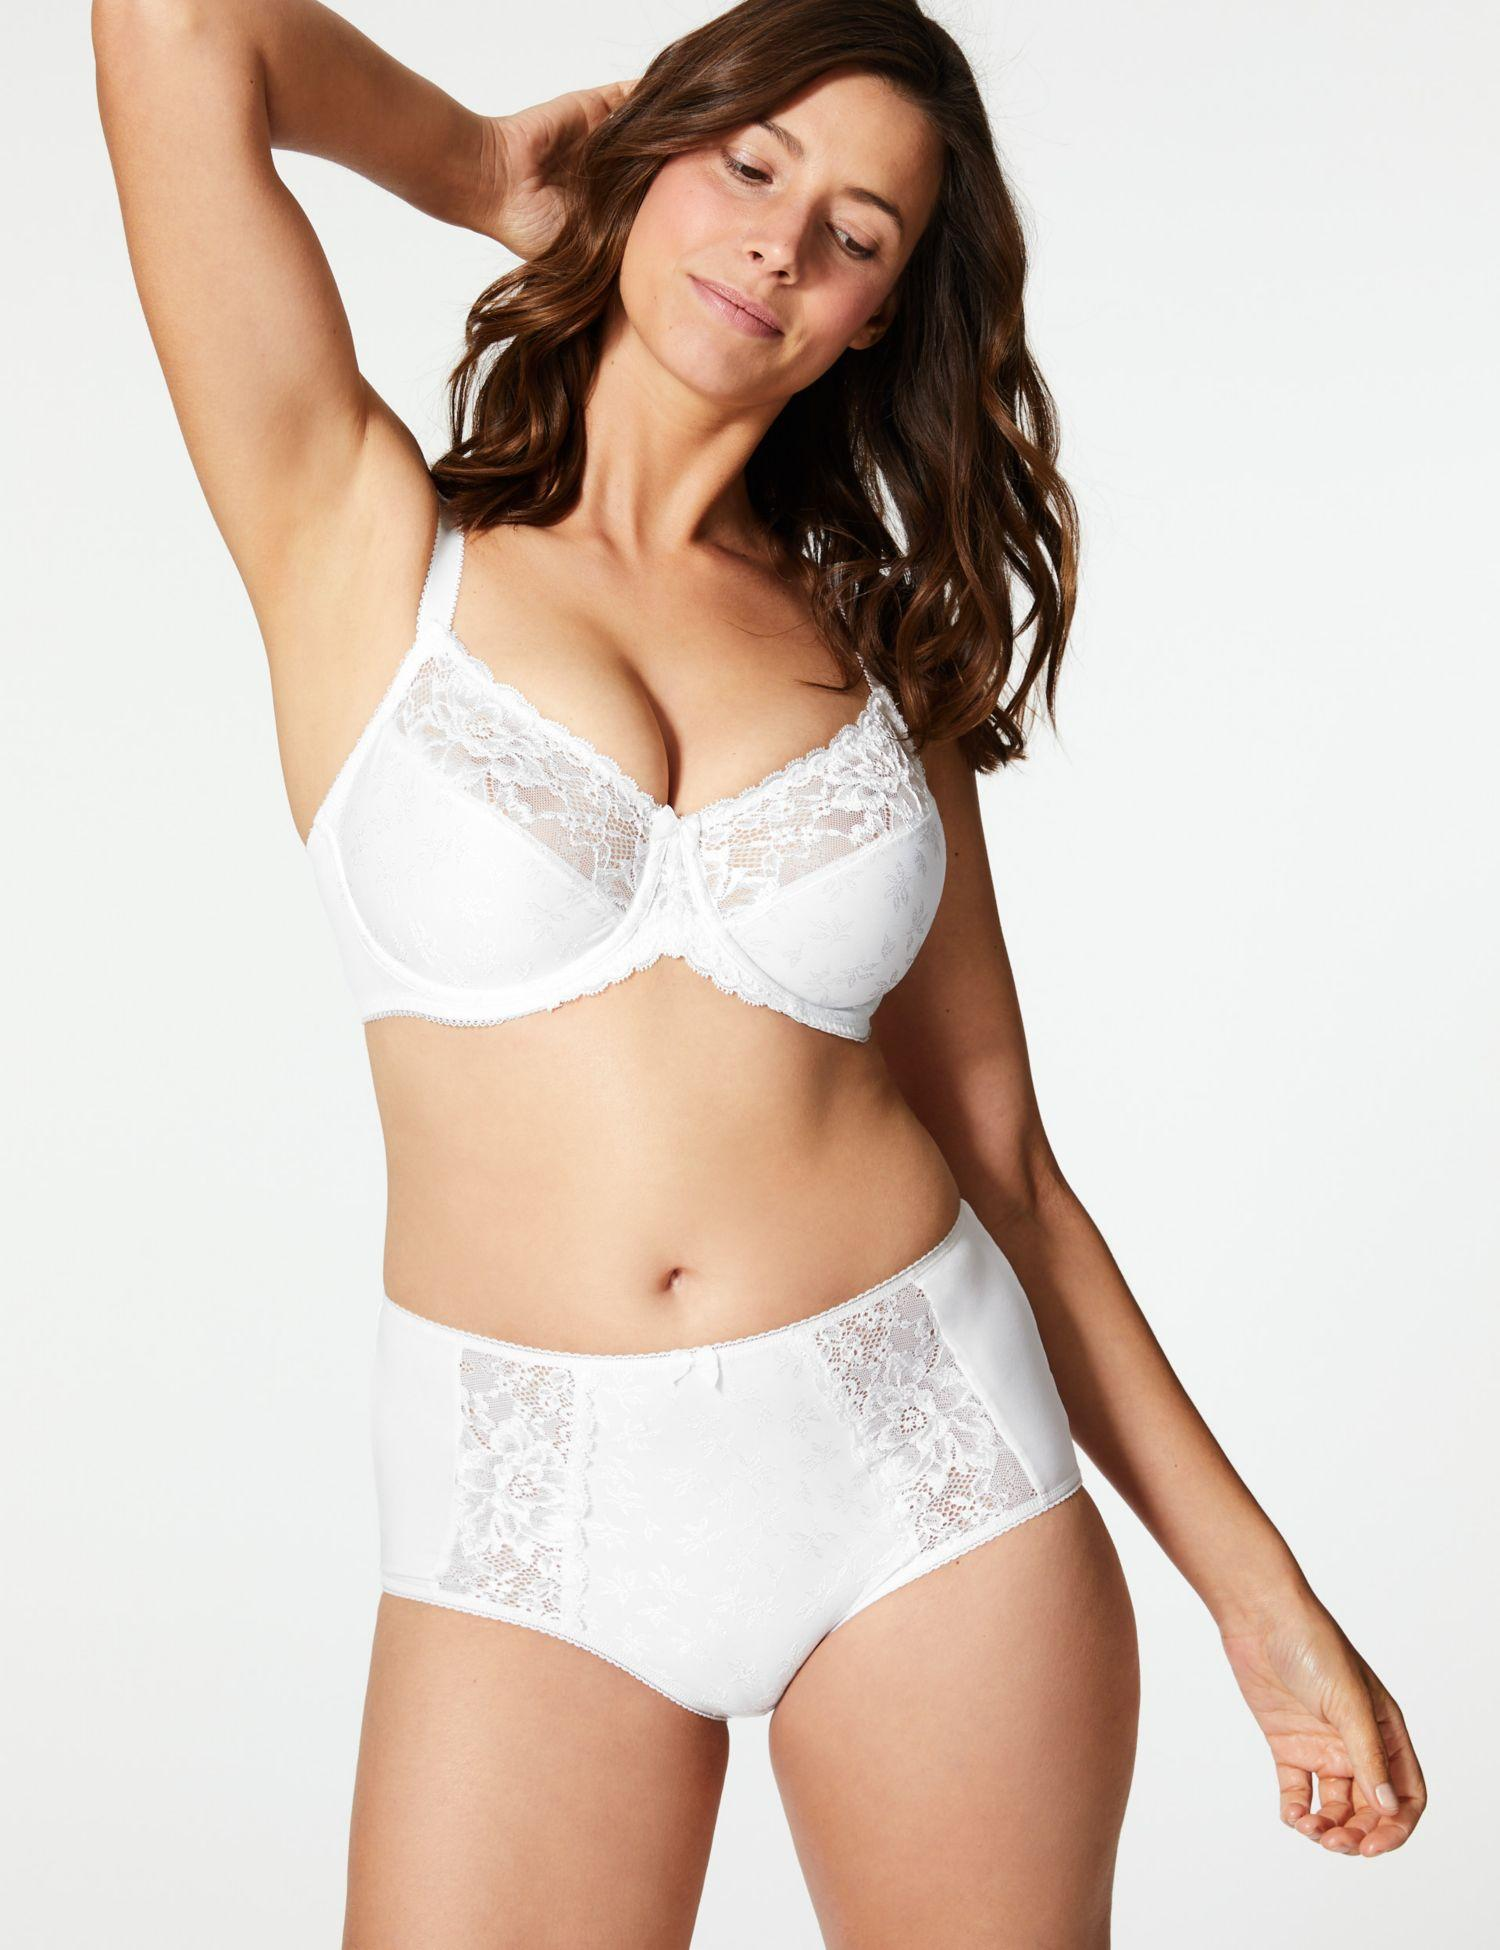 665b922a64 Marks   Spencer Floral Jacquard Lace Minimiser Full Cup Bra C-GG in ...